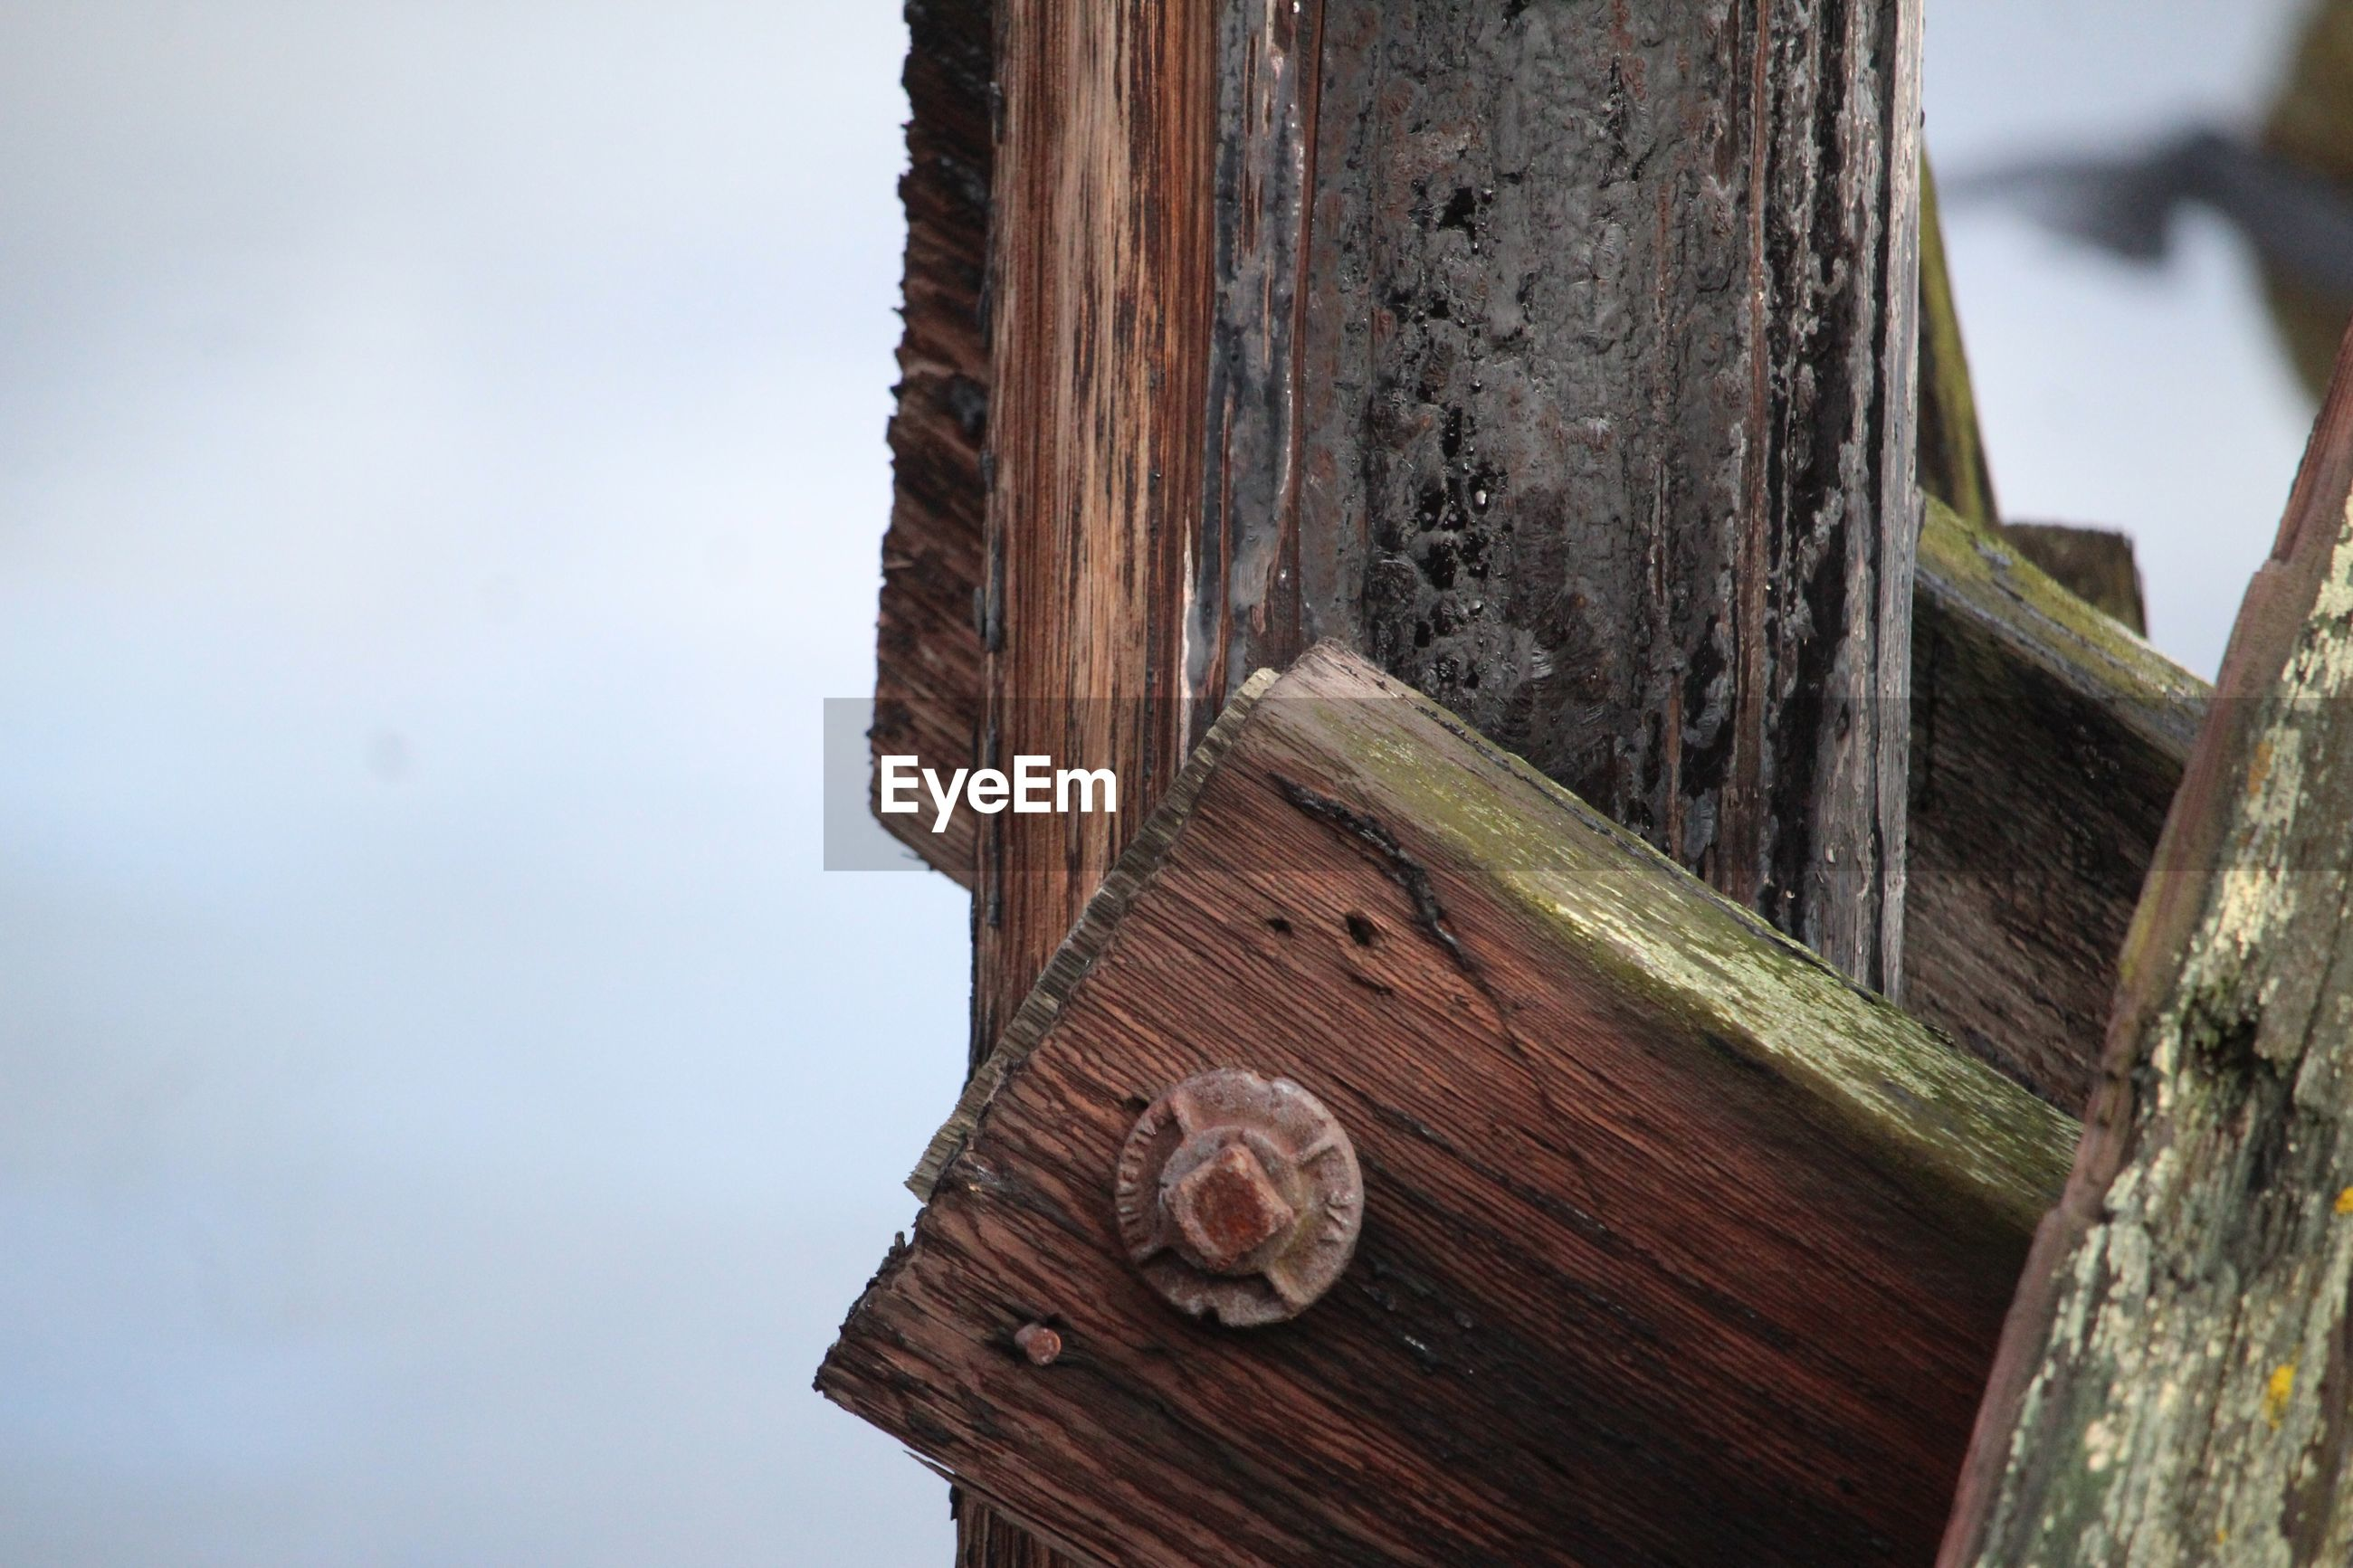 Close-up of wooden structure